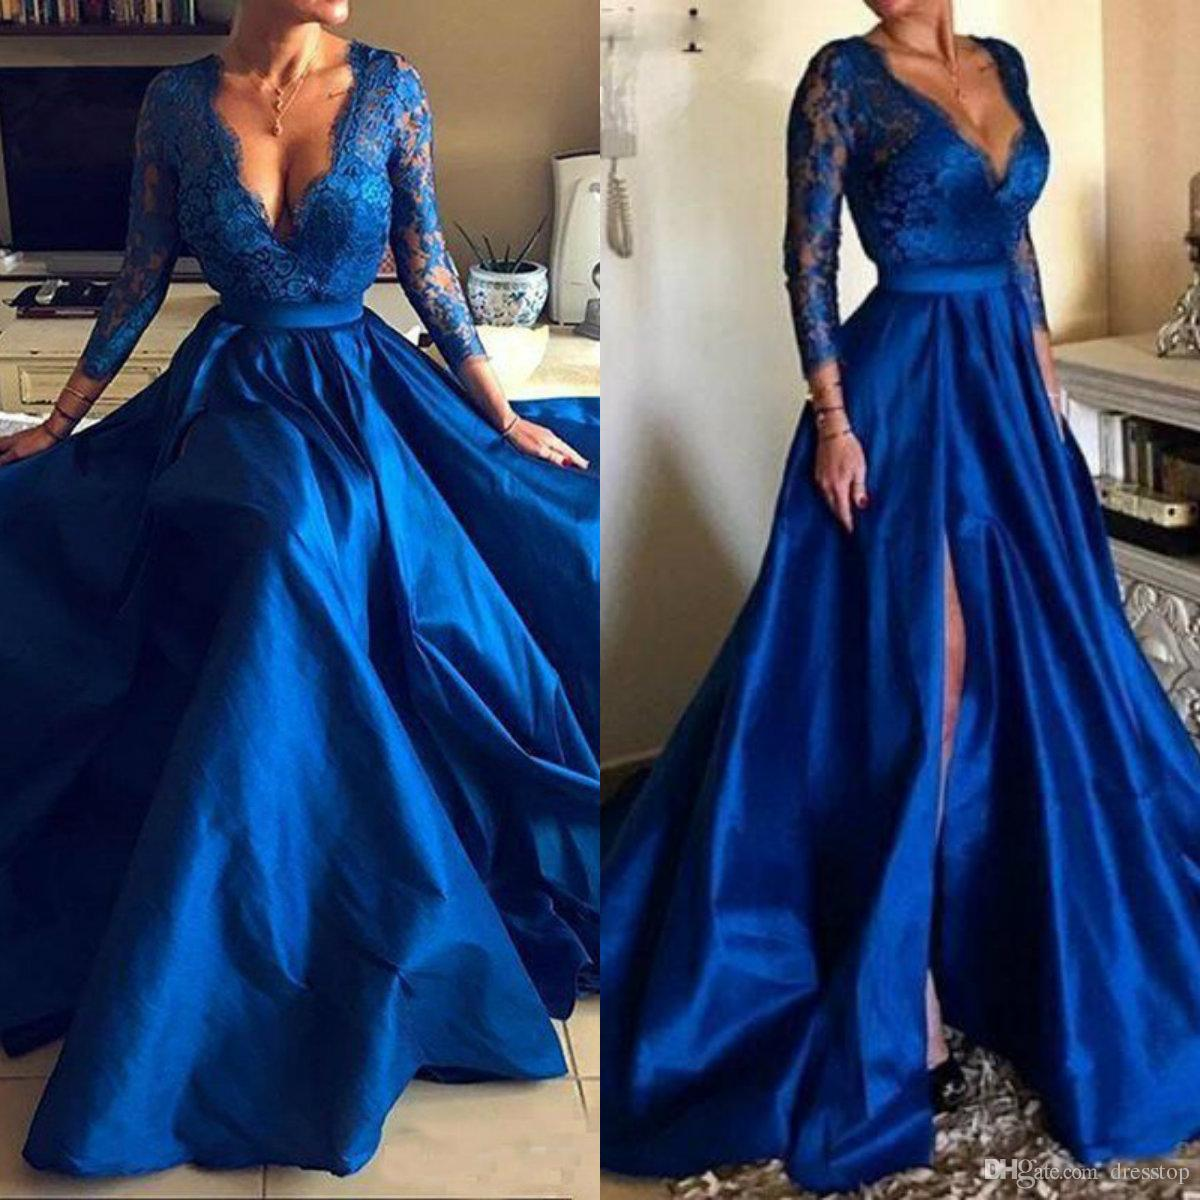 2019 Royal Blue Mother of the Bride Dresses Plus Size V Neck Lace Appliques Long Sleeve Formal Front Split Evening Gowns Vestidos